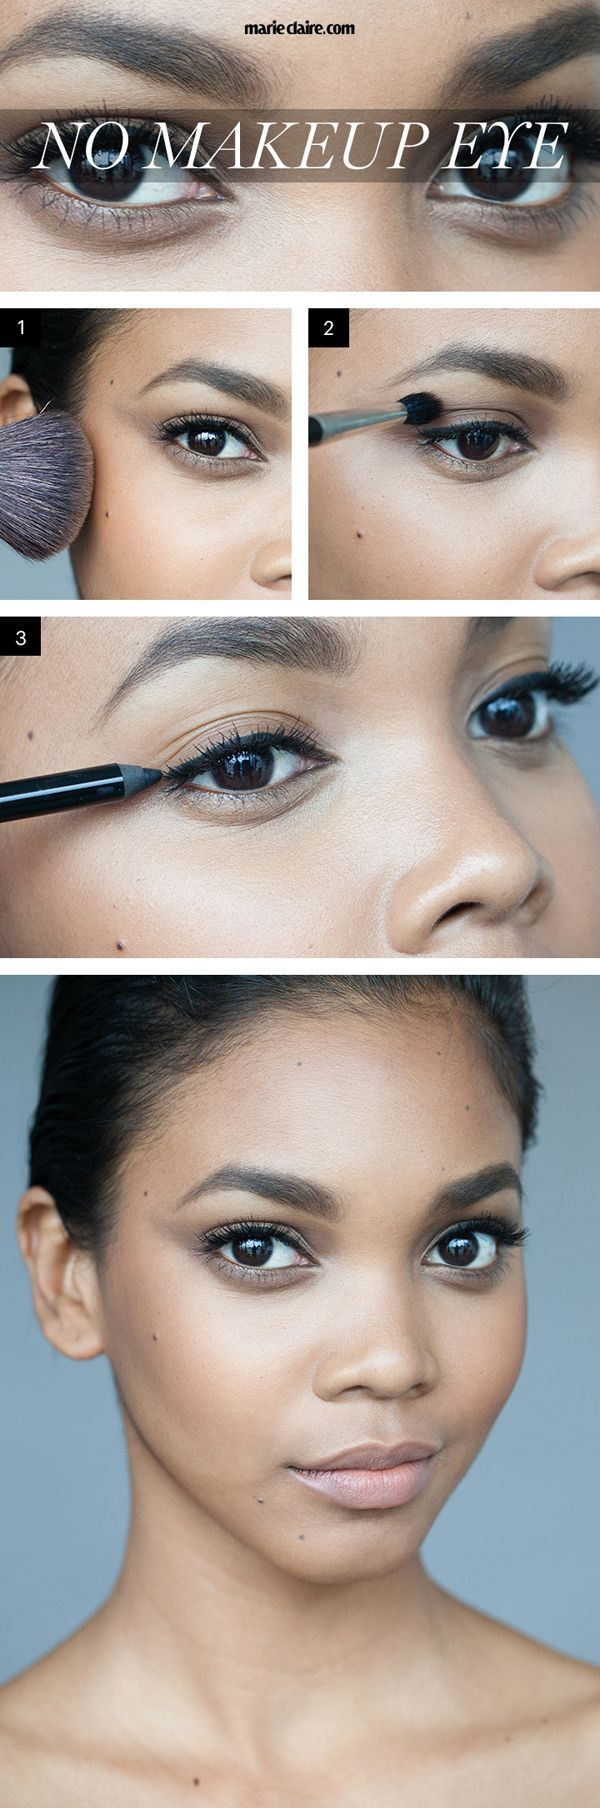 How to Do the NoMakeup Makeup Look the *Right* Way